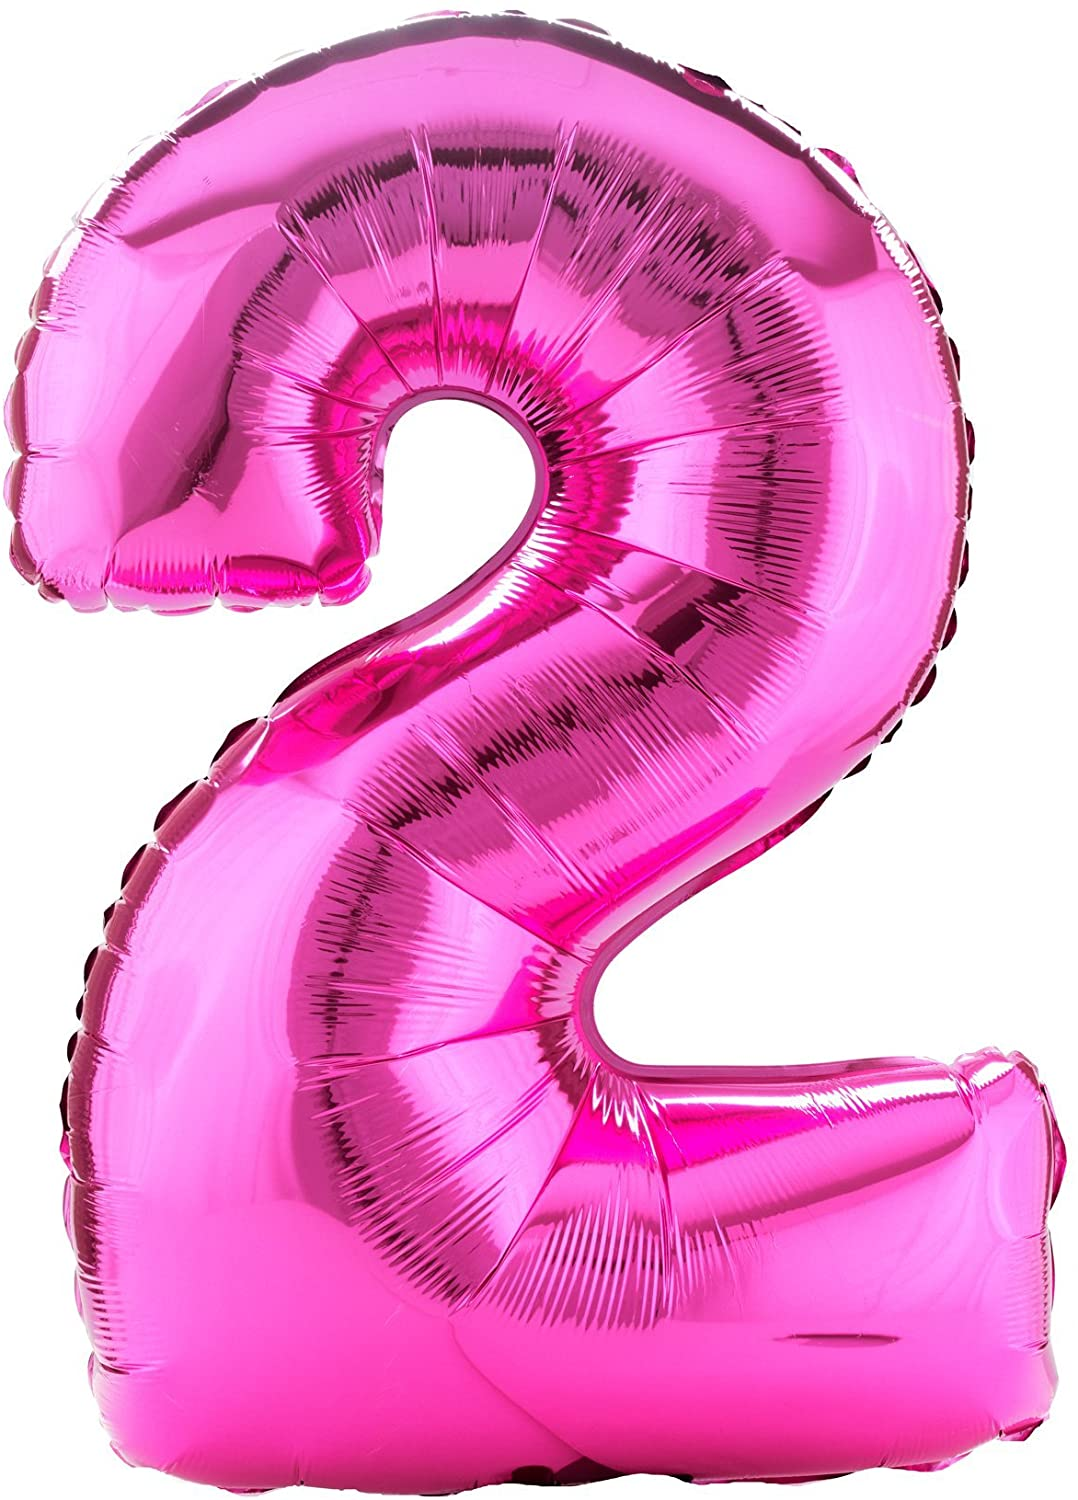 Party Destination 160367 34 in. Pink no.2 Shaped Foil Balloon